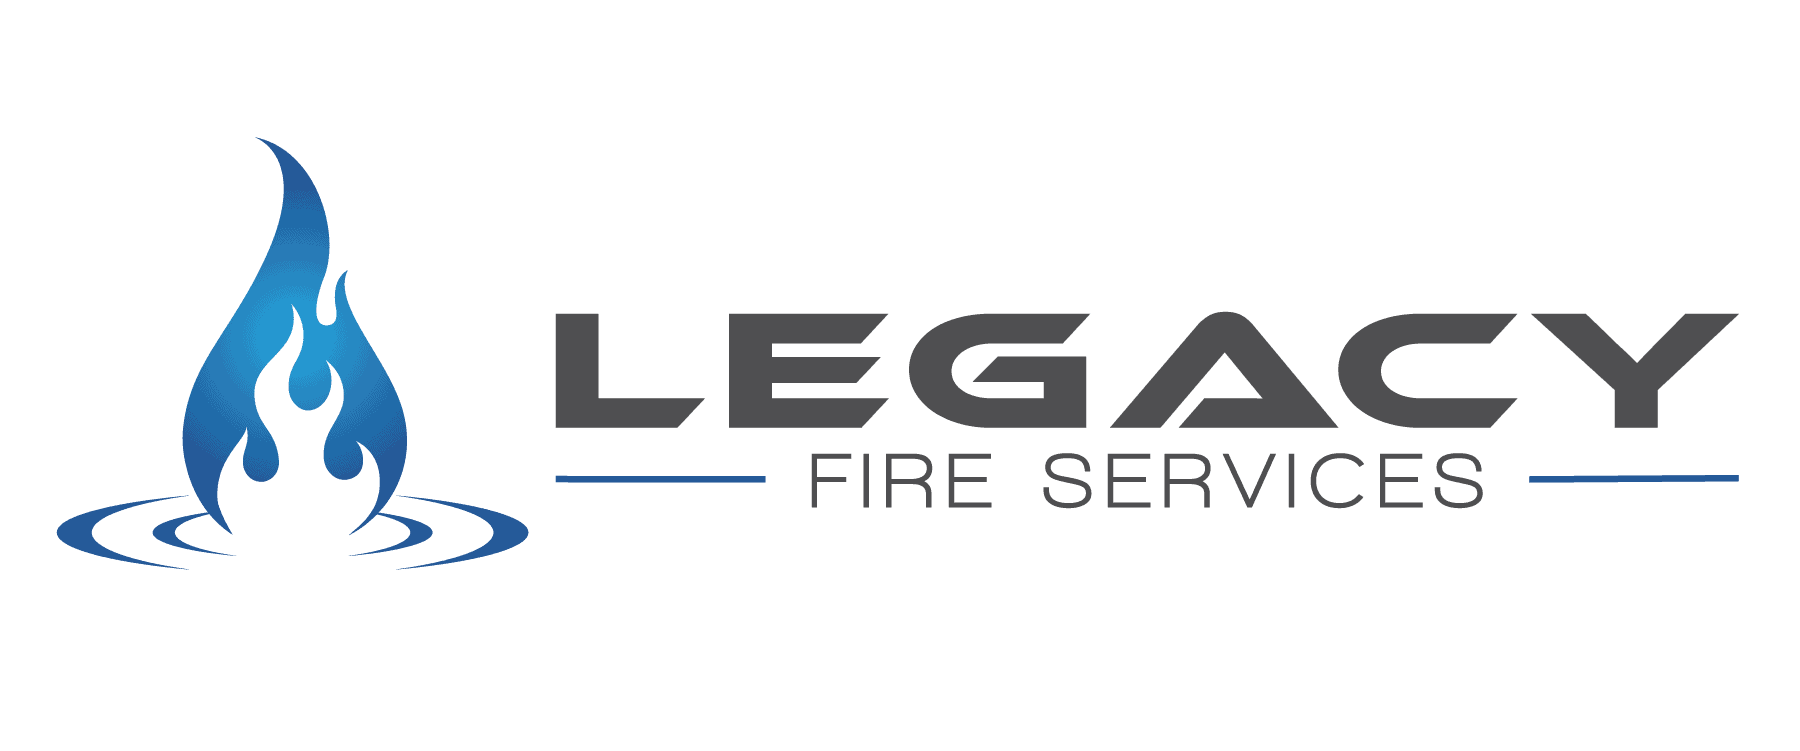 Legacy Fire Services Logo